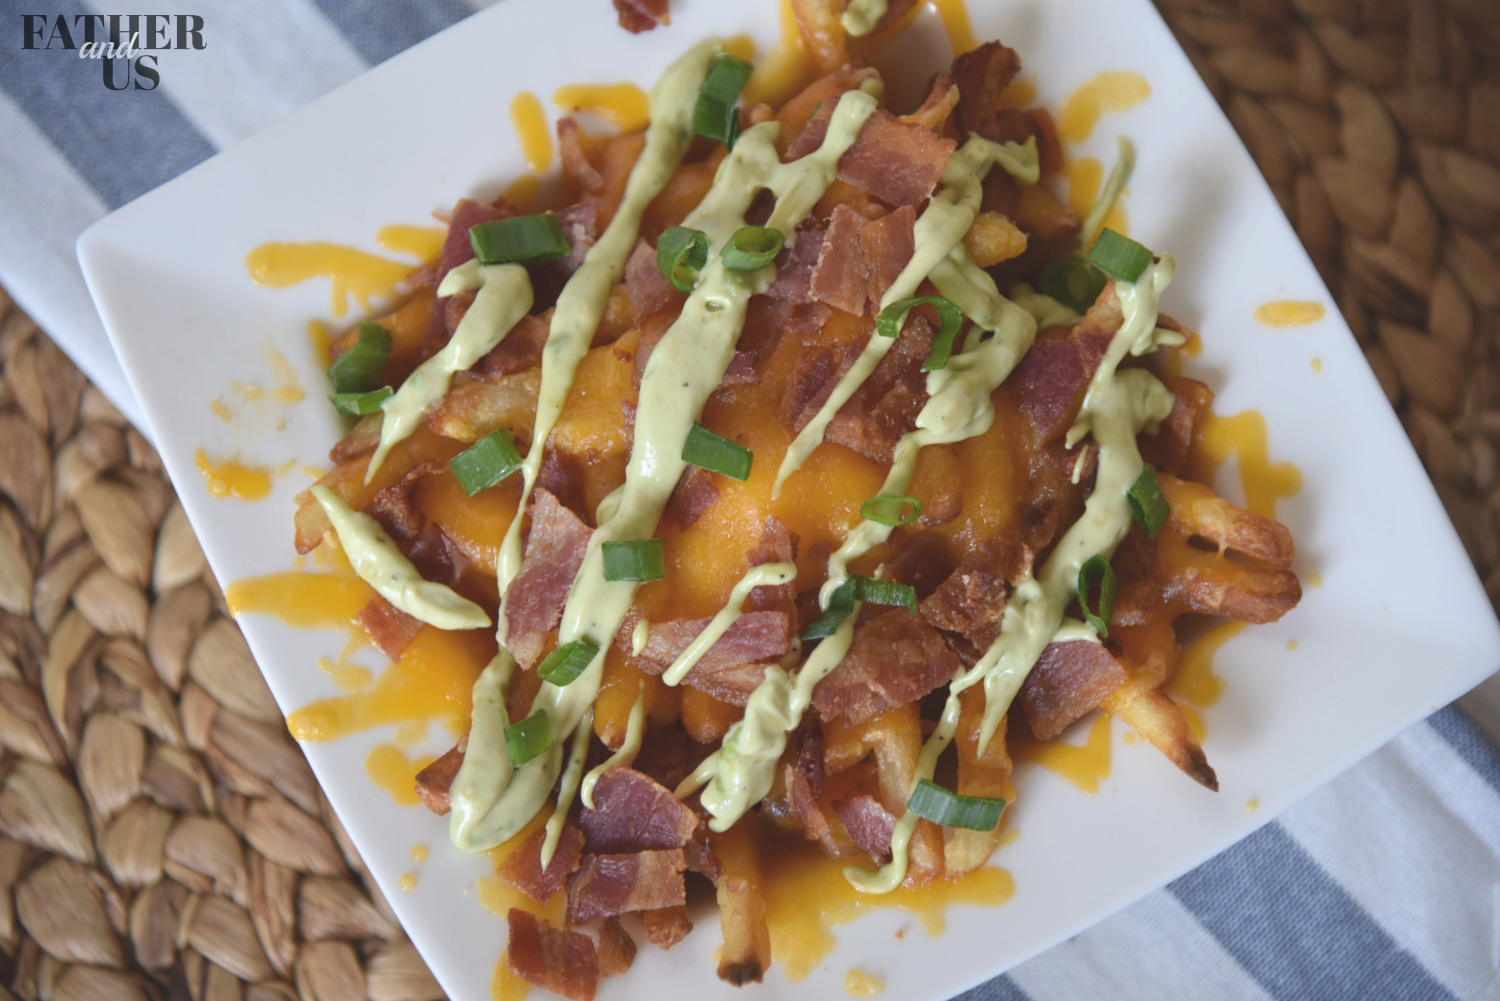 Loaded fries with avocado ranch